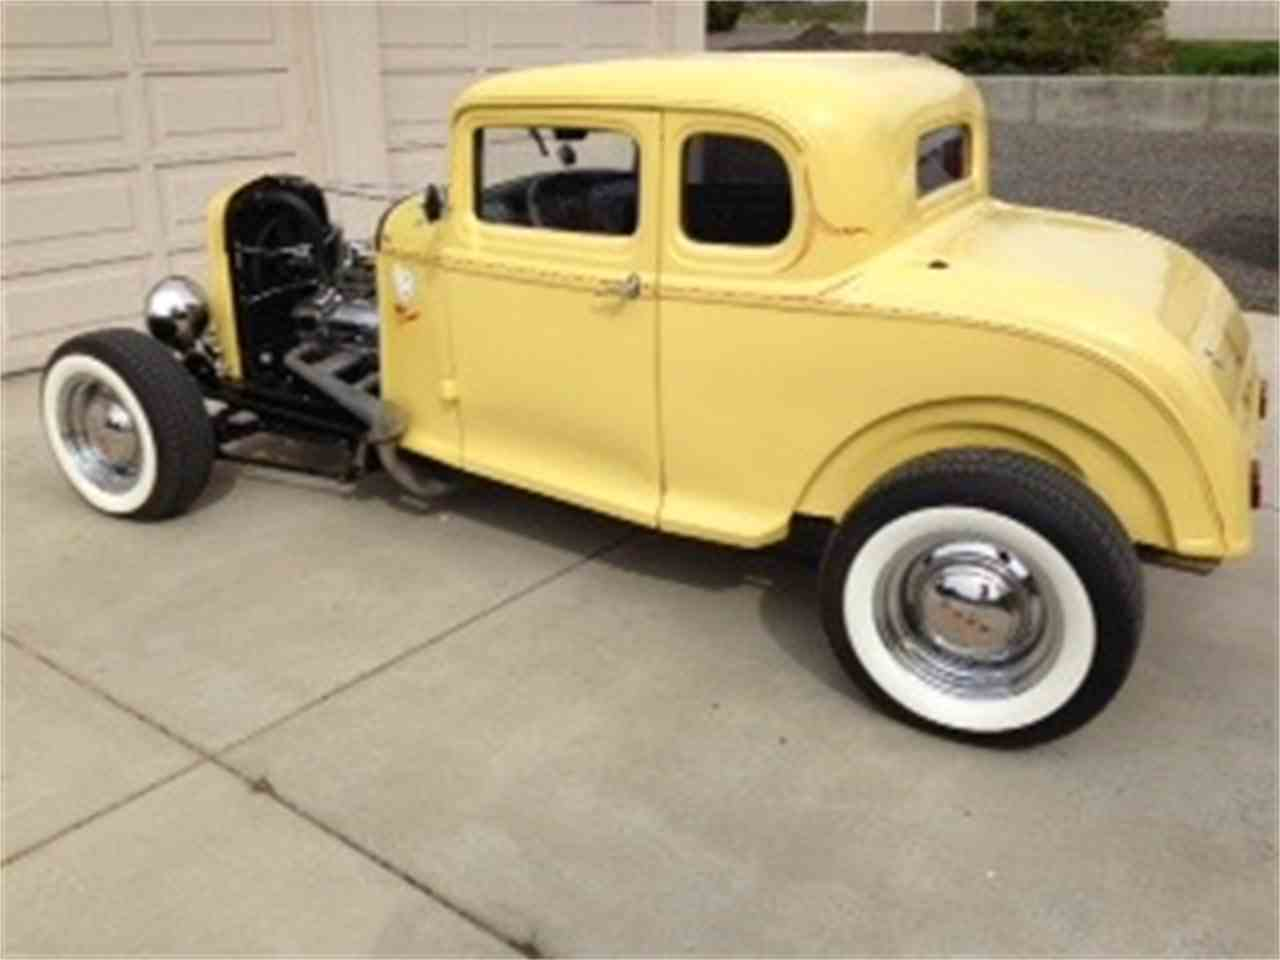 1932 Ford 5-Window Coupe for Sale - CC-975528 & 1932 Ford 5-Window Coupe for Sale | ClassicCars.com | CC-975528 markmcfarlin.com